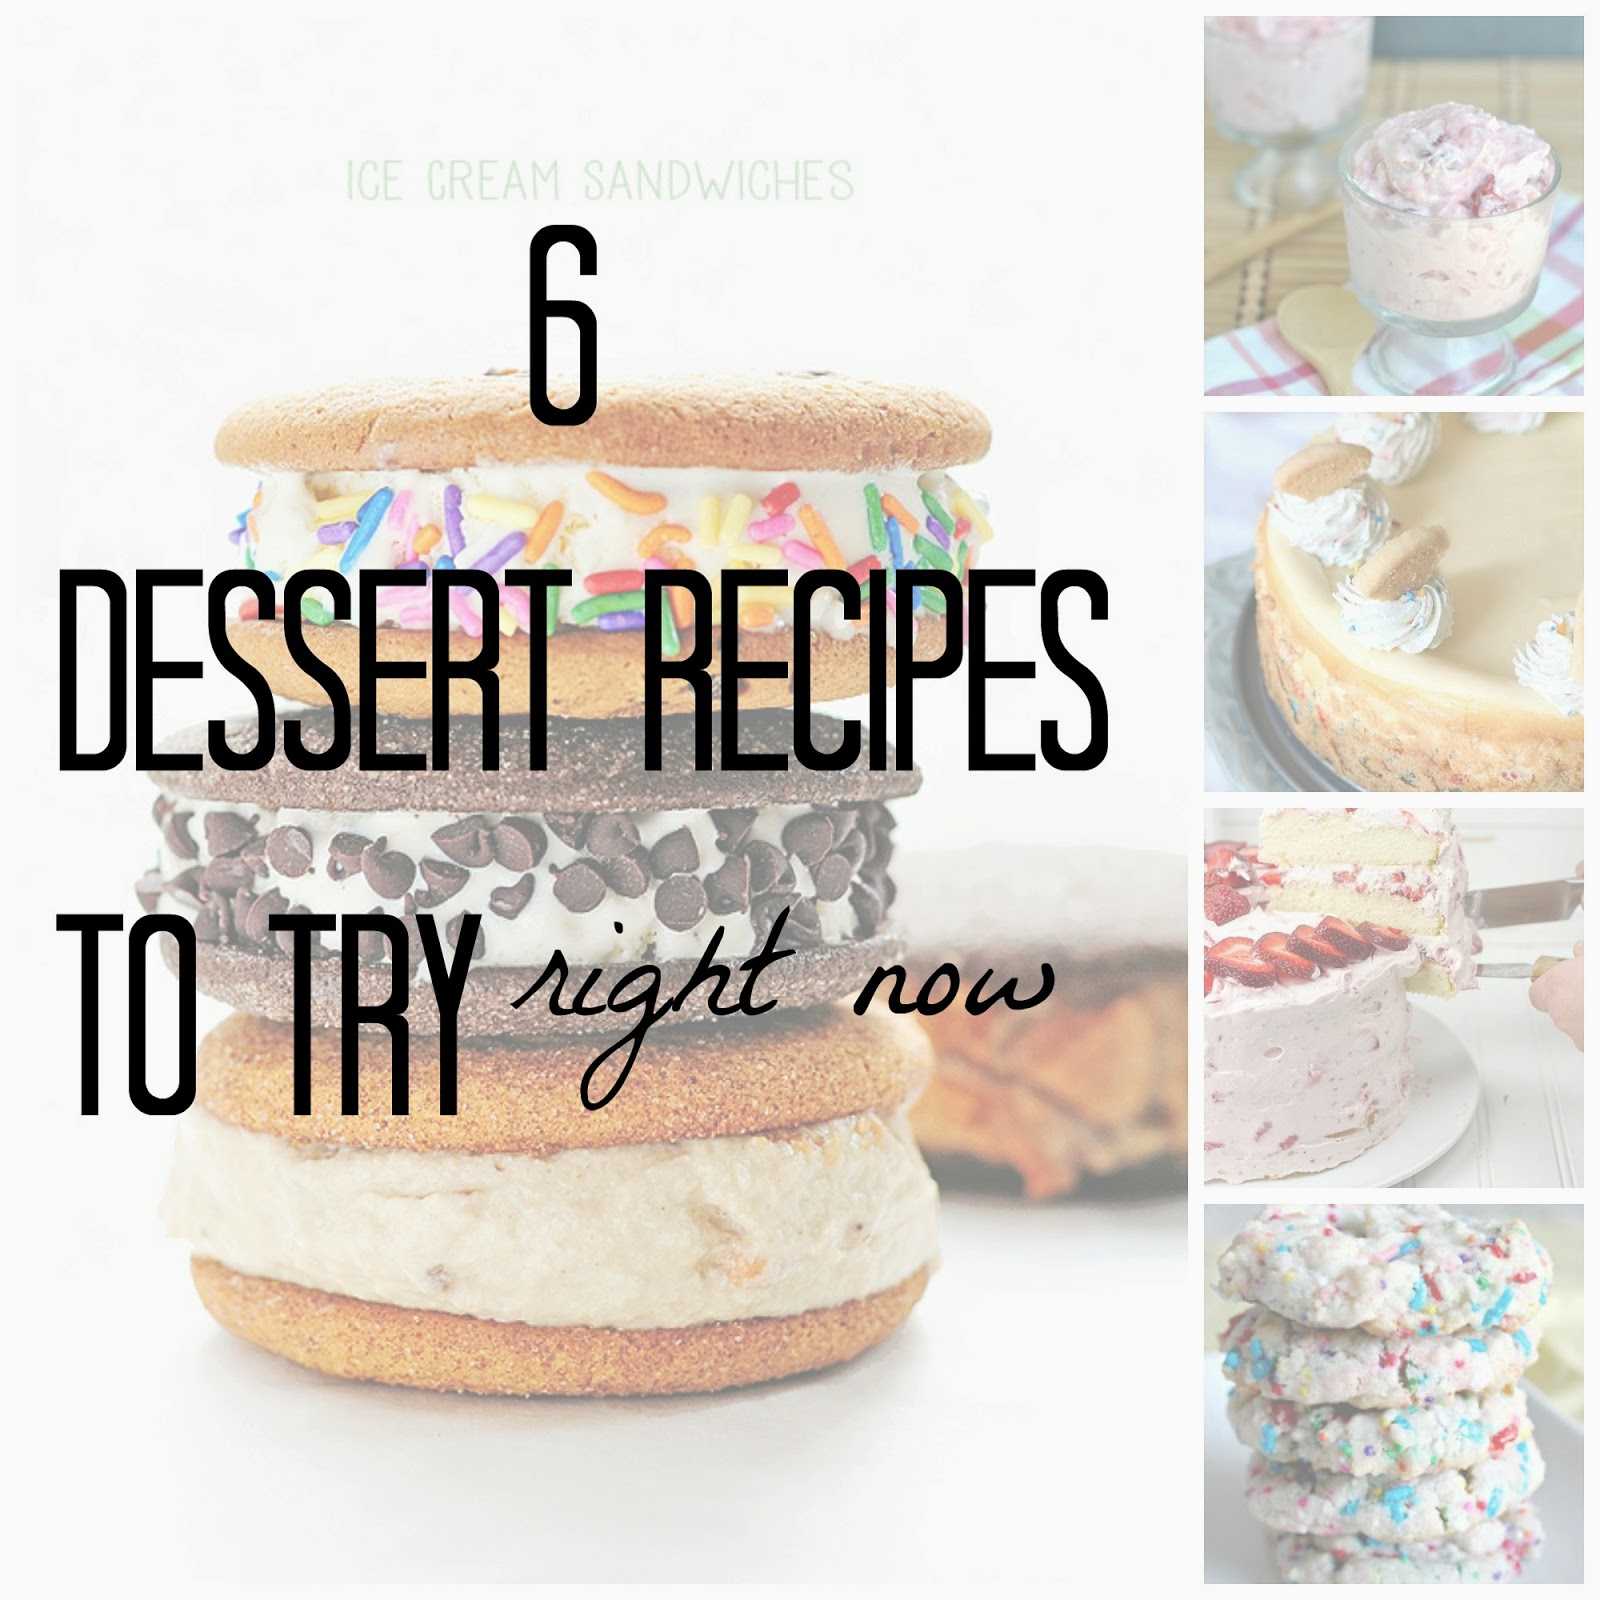 6 Dessert Recipes To Try Right Now